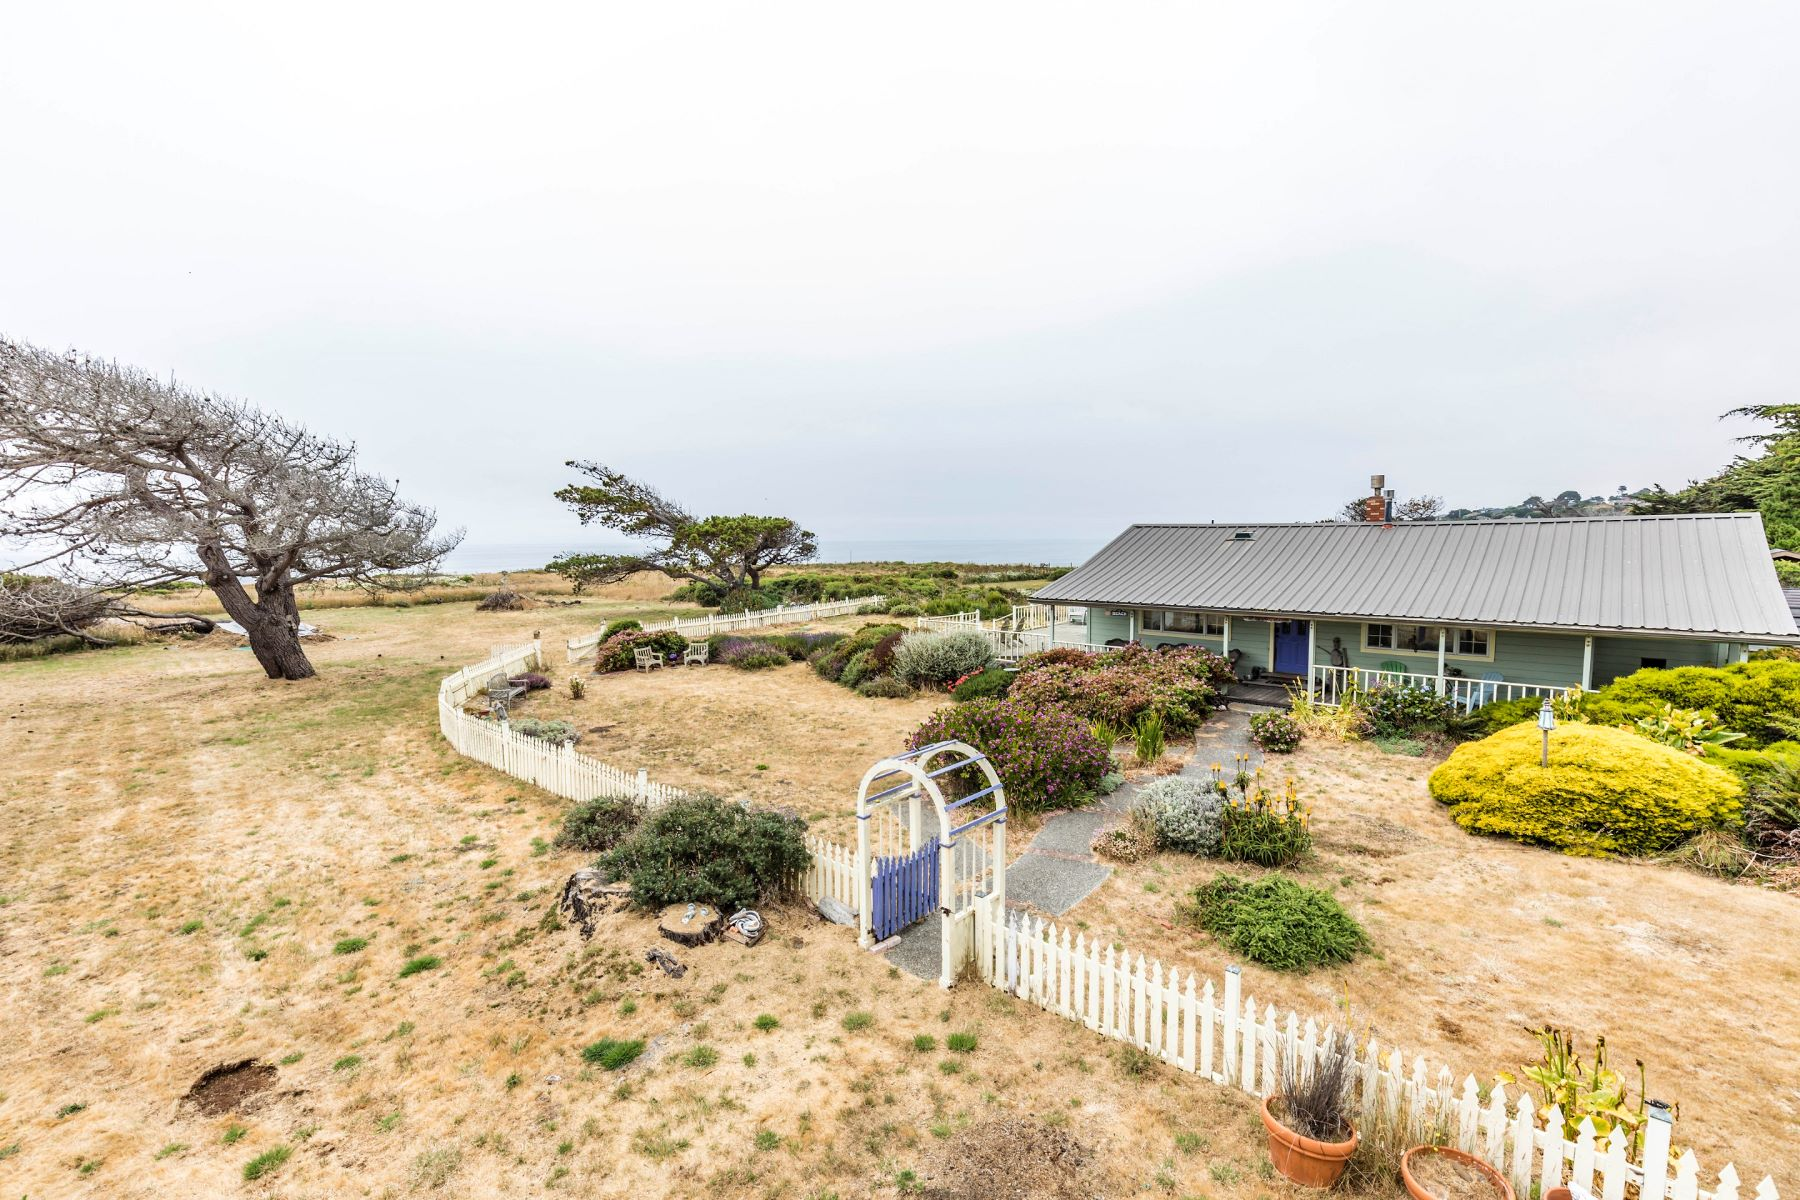 Casa Unifamiliar por un Venta en Cottontail Acres 15550 S. Highway 1 Manchester, California 95459 Estados Unidos